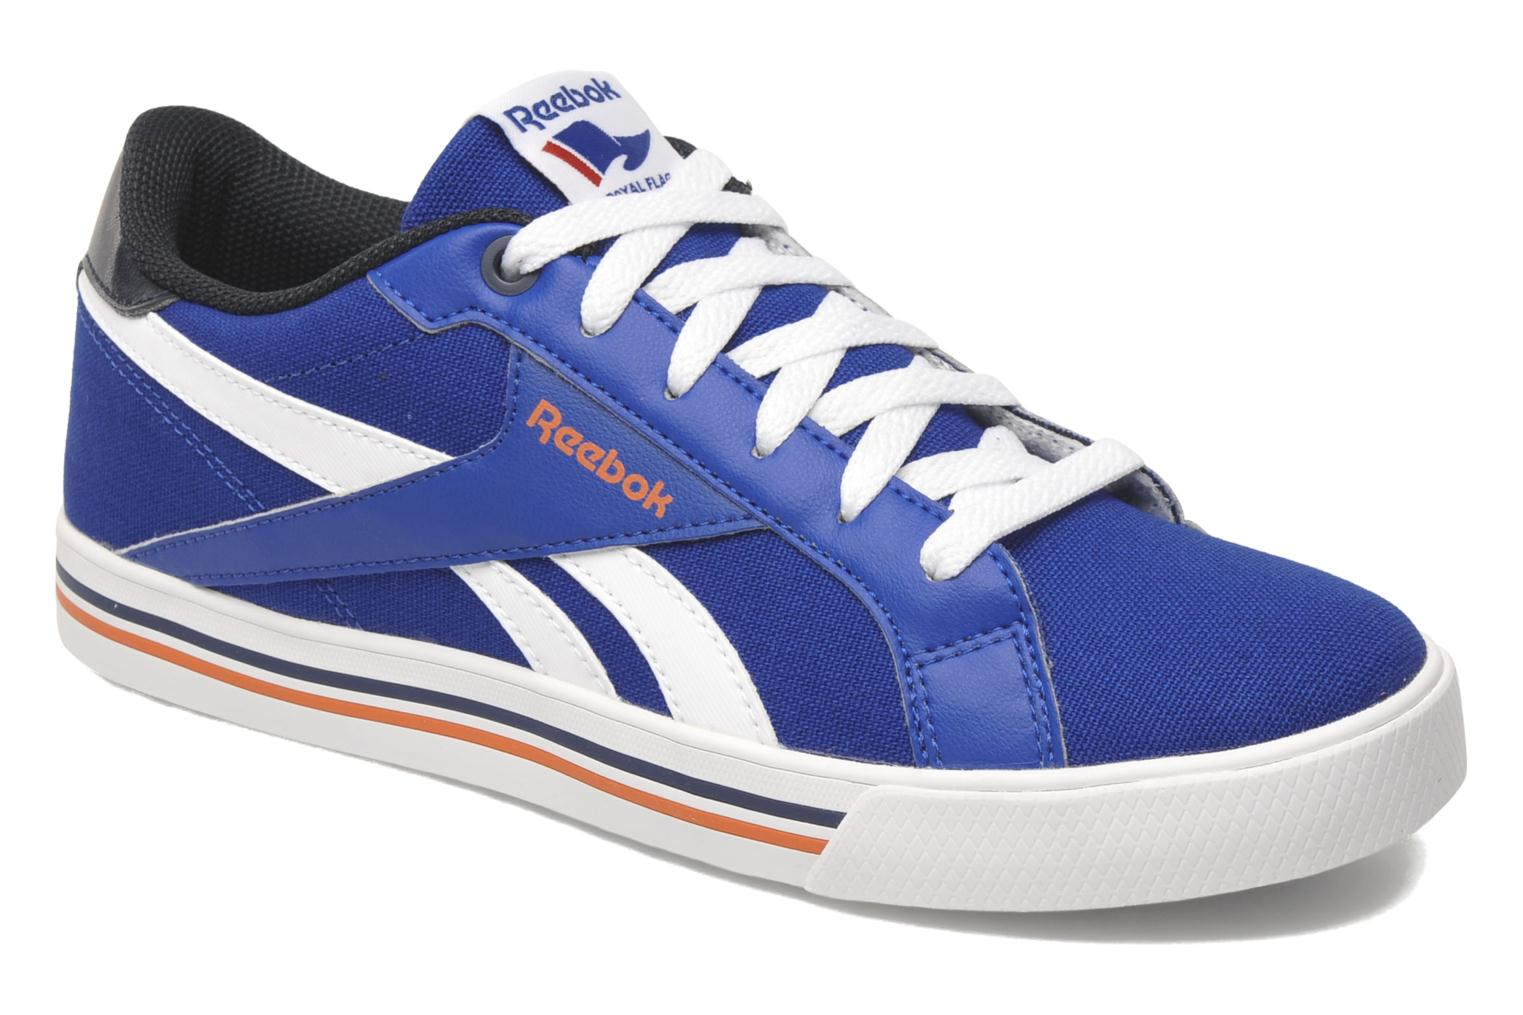 reebok reebok royal complete low trainers in blue at 167166. Black Bedroom Furniture Sets. Home Design Ideas